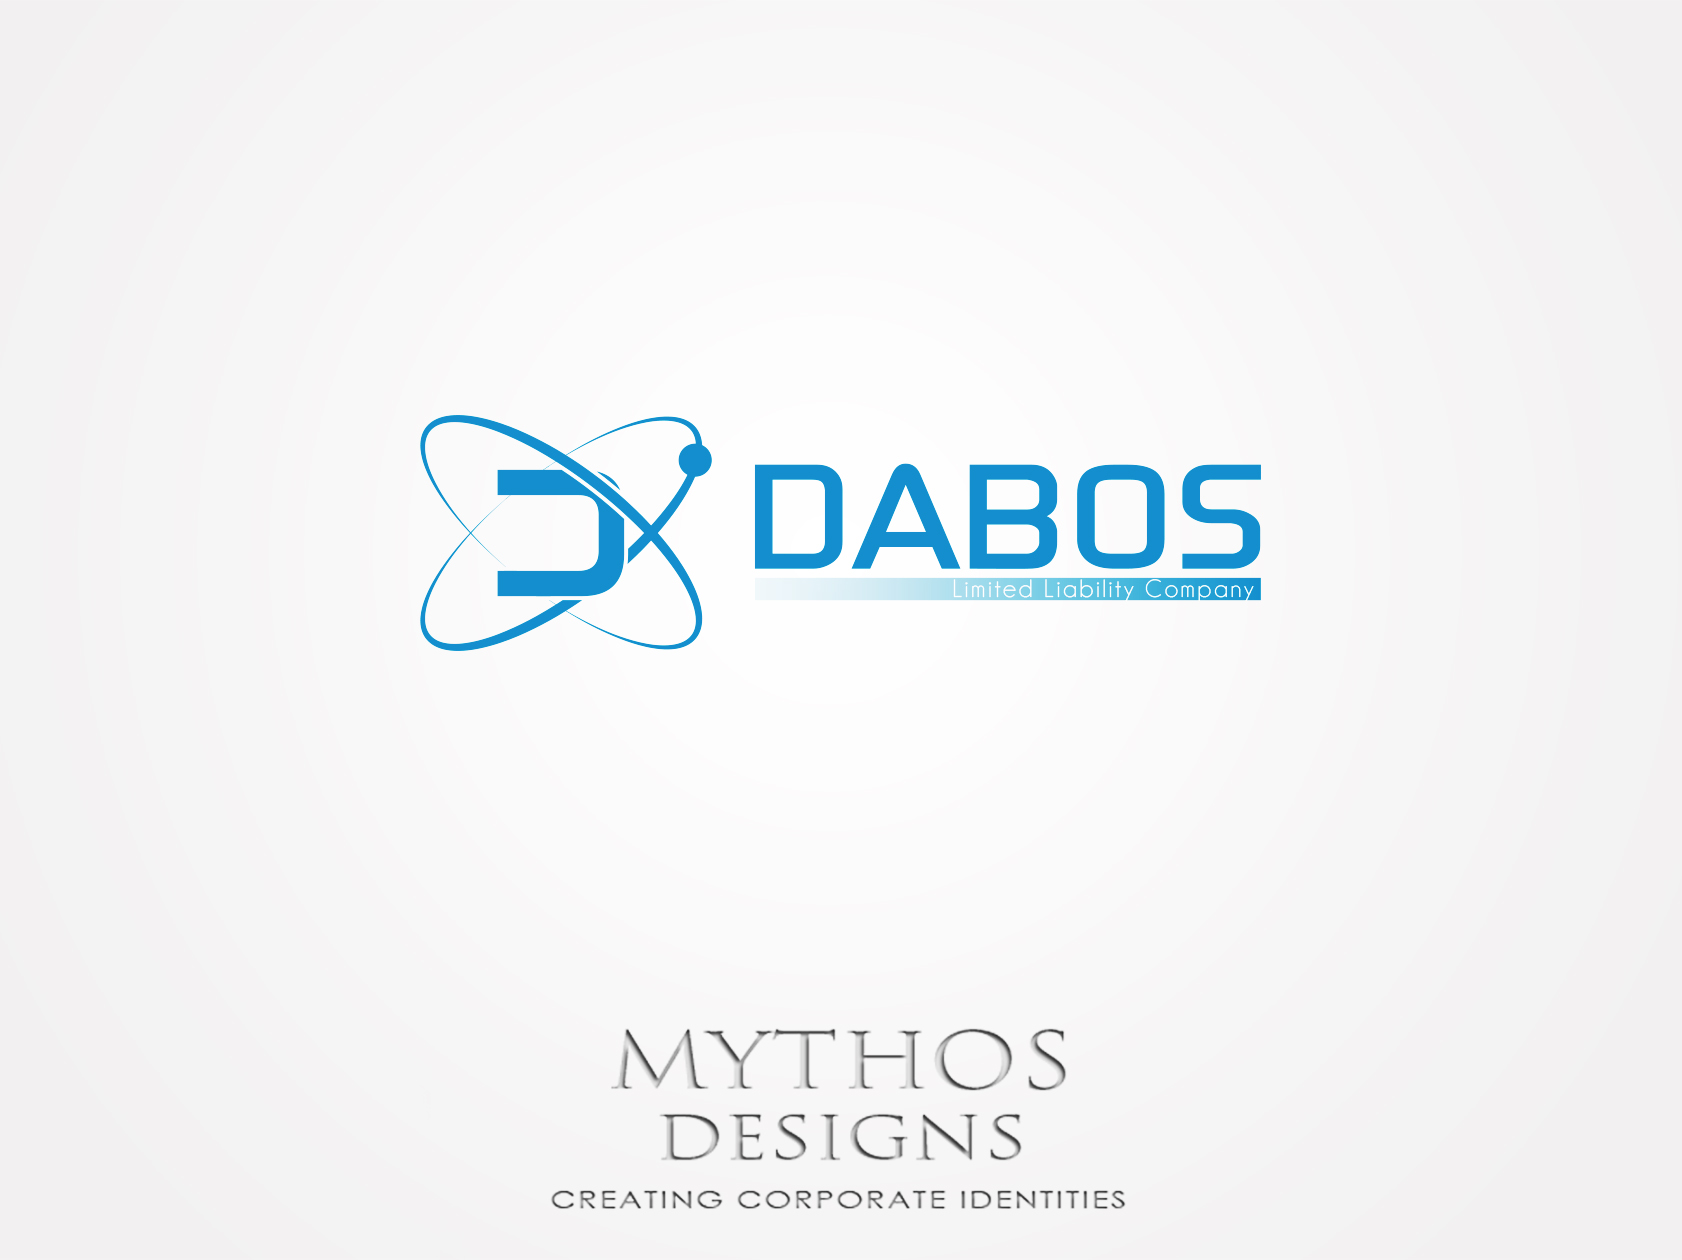 Logo Design by Mythos Designs - Entry No. 36 in the Logo Design Contest Imaginative Logo Design for DABOS, Limited Liability Company.